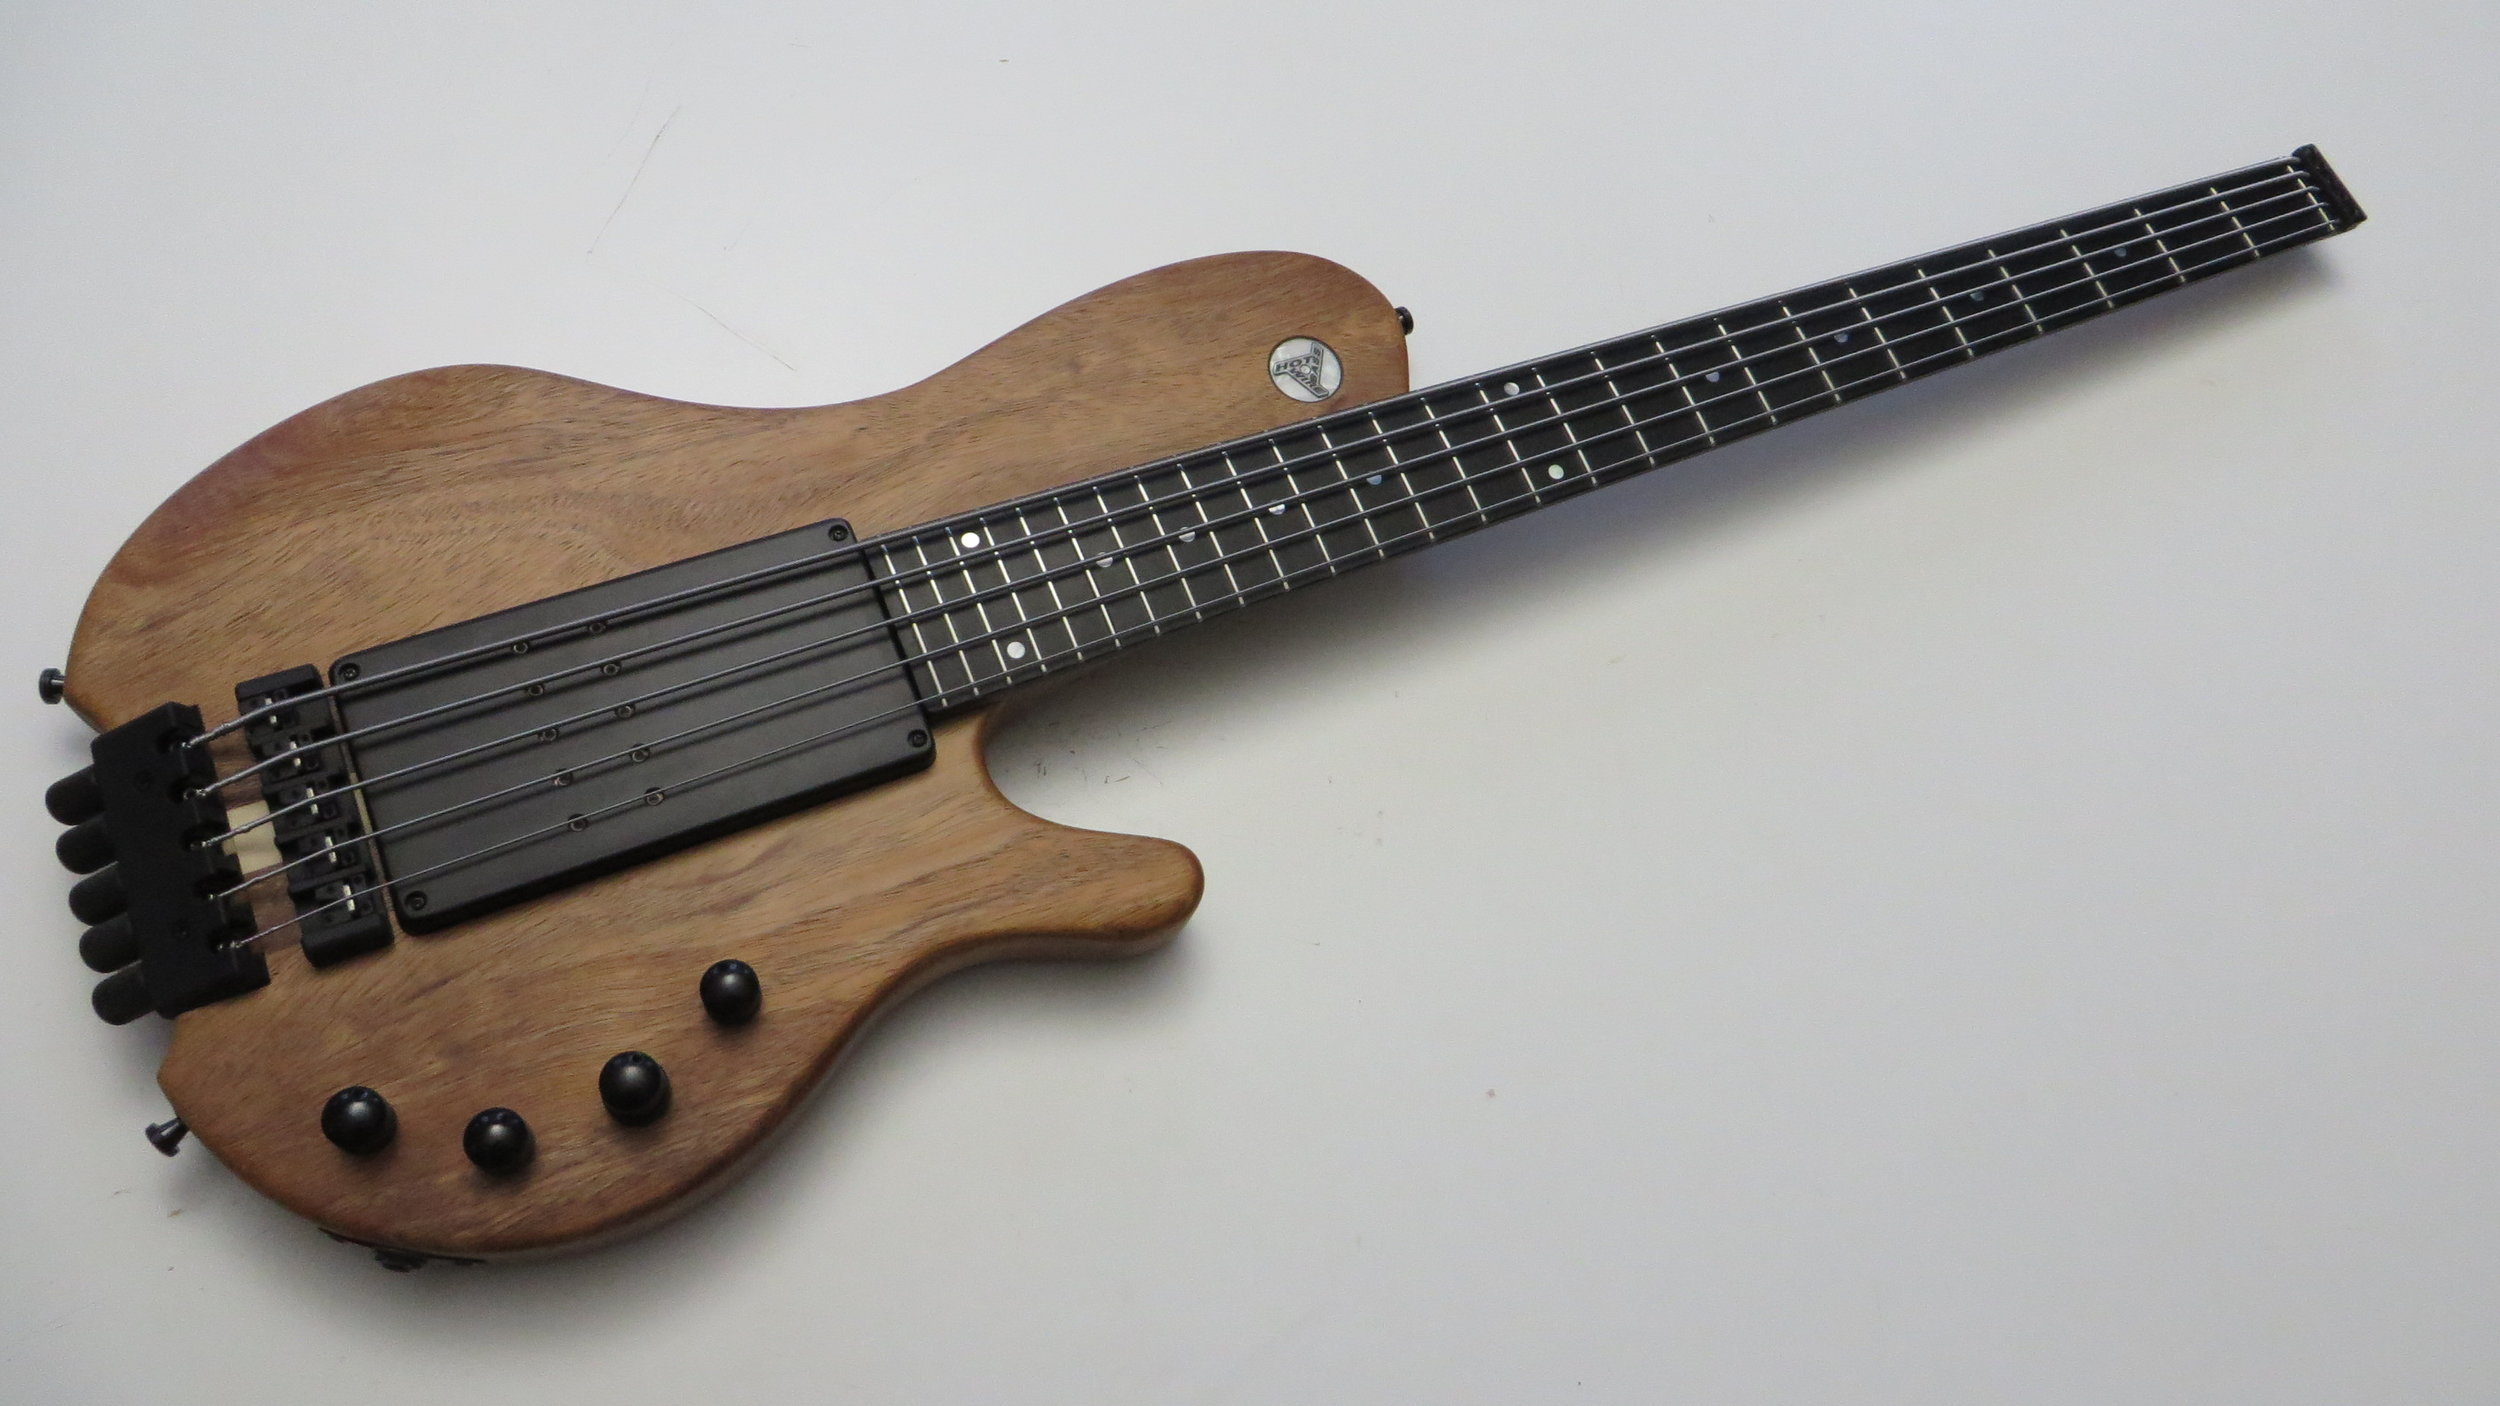 SC LONG RAMP - All elements of the Single Cut Long Ramp were discussed and thought through together with the customer on site. So a long scale headless with neck-thru was created, with slightly narrower string spacing and 26 frets: